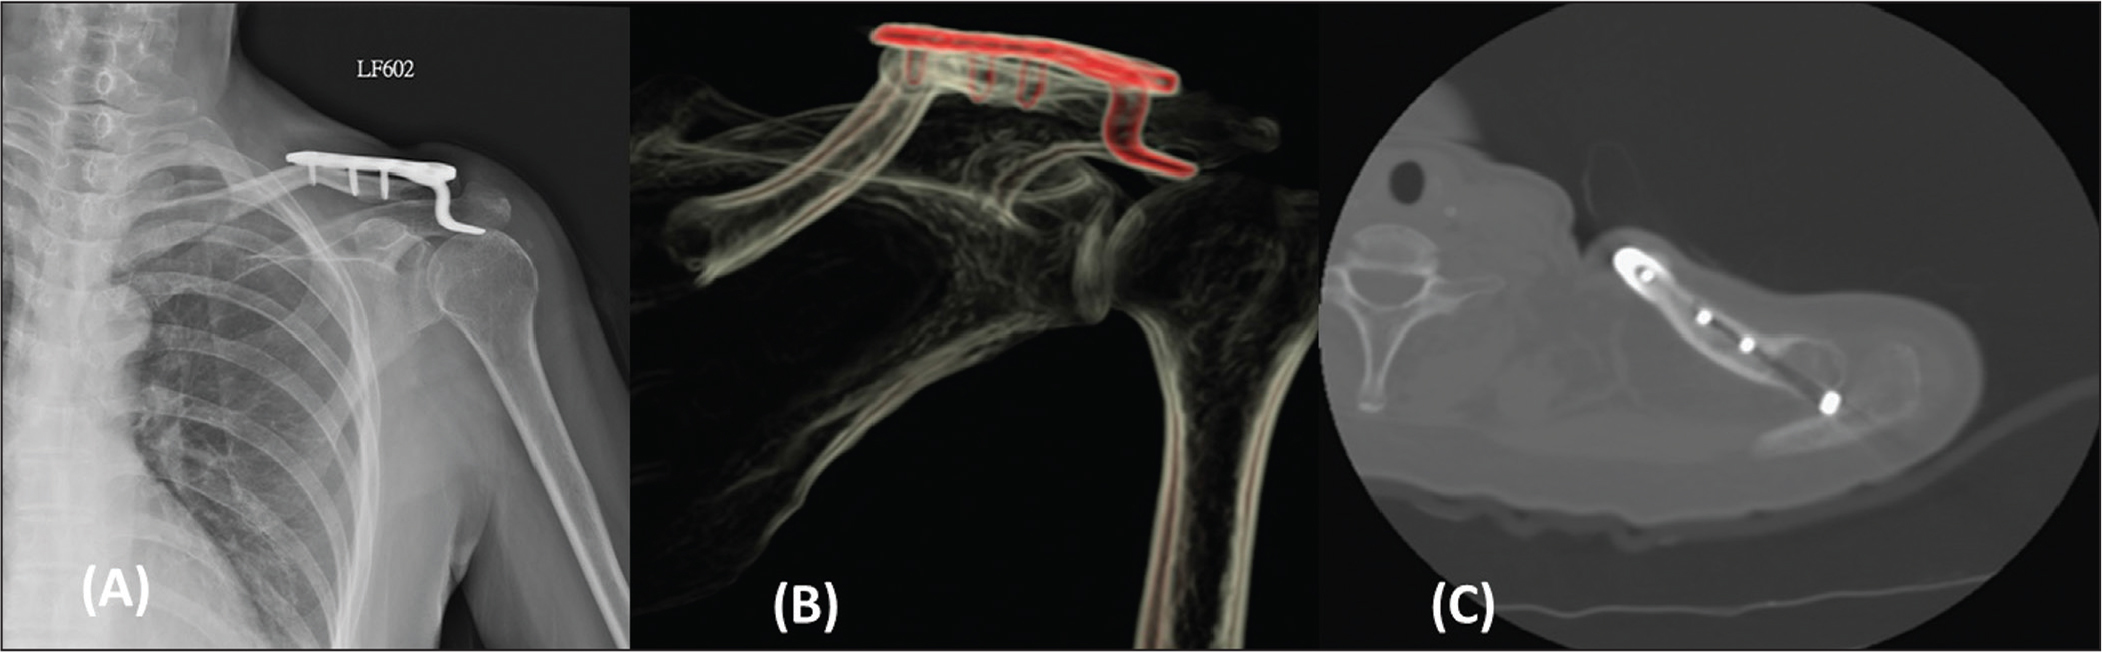 Case 4. Radiograph of internal rotation of the shoulder showing the distal clavicle fracture fixed with a hook plate with a peri-implant fracture over the most medial screw hole (A). Three-dimensional computed tomography scan revealed a fracture from the inferior screw hole to the upper layer of the cortex around the plate and bone junction (B). Axial view computed tomography scan revealed eccentric insertion of the medial screw (C).